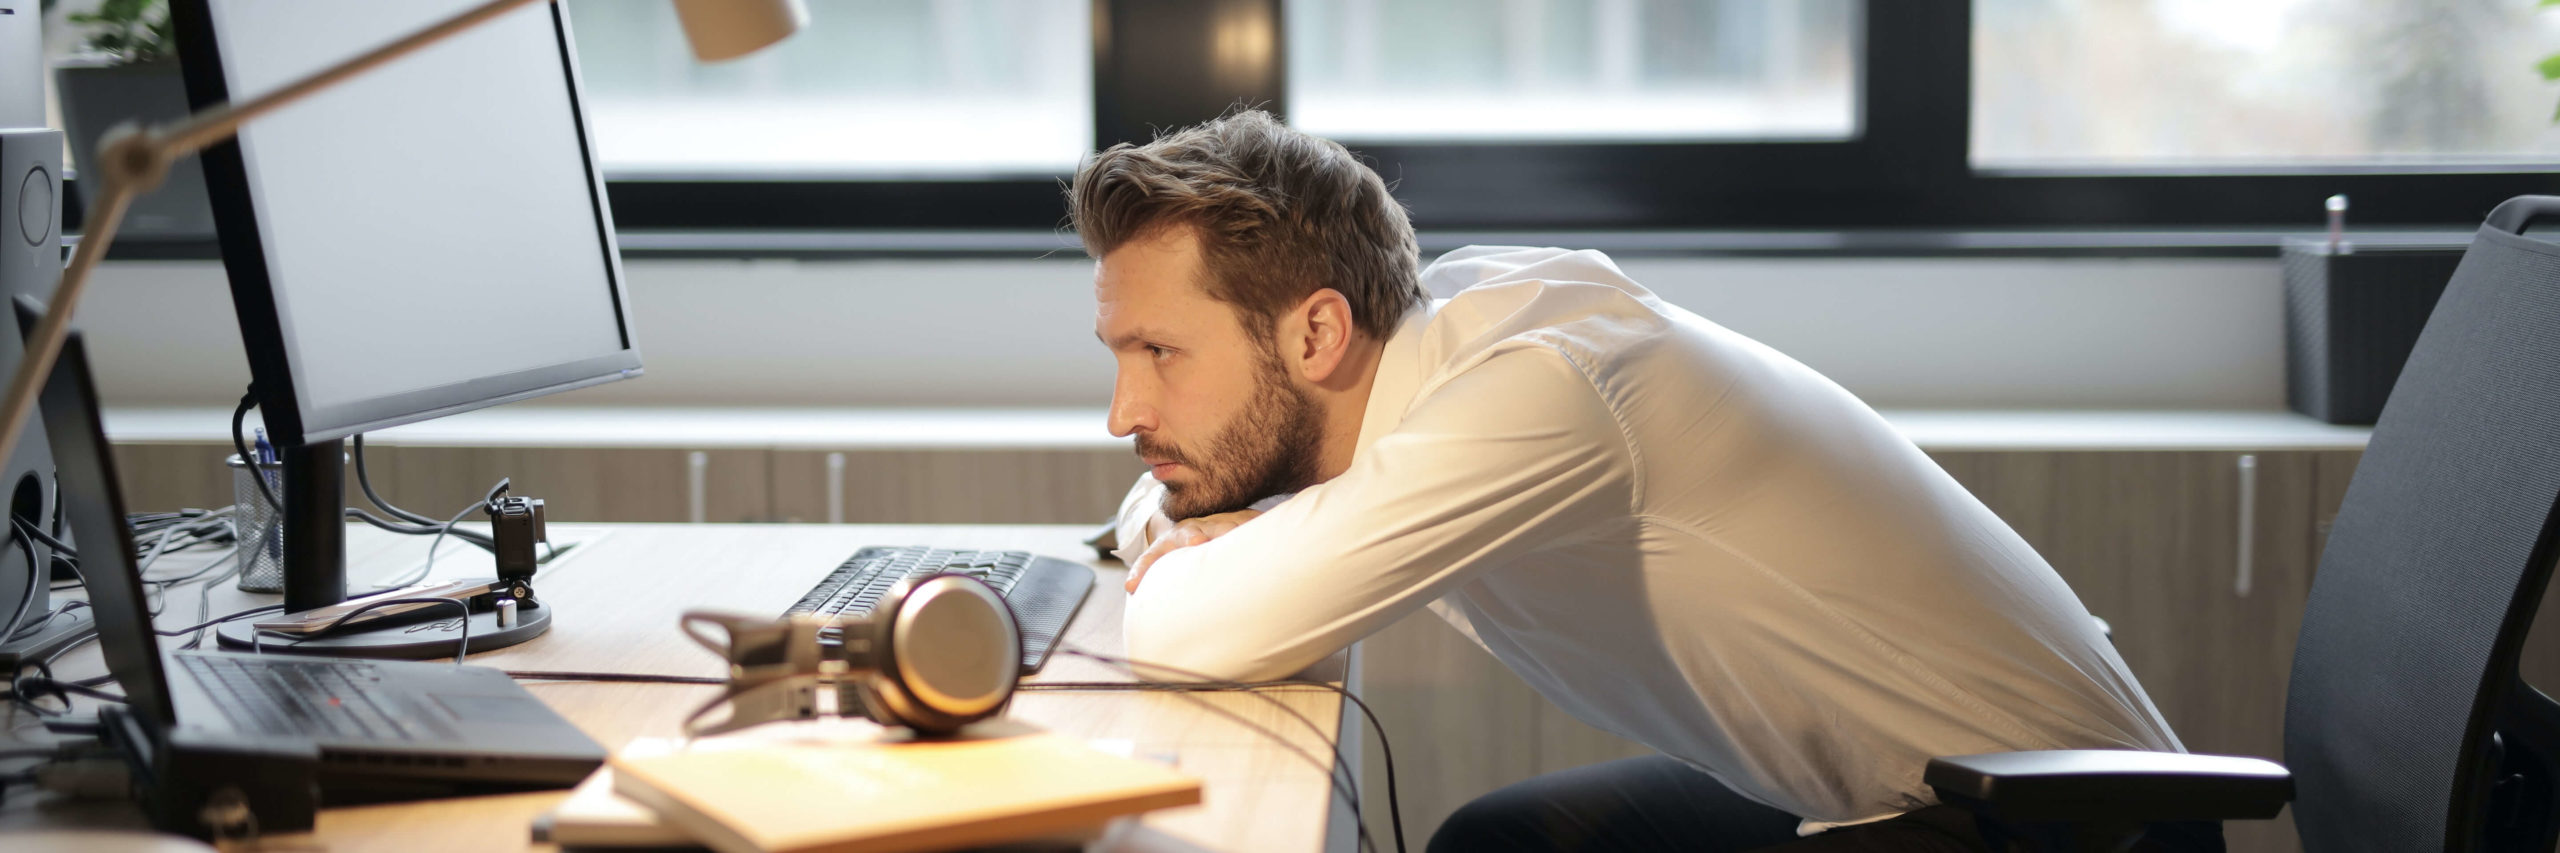 Employee Burnout & Disengagement vs. Exhaustion – When Time Off Doesn't Help